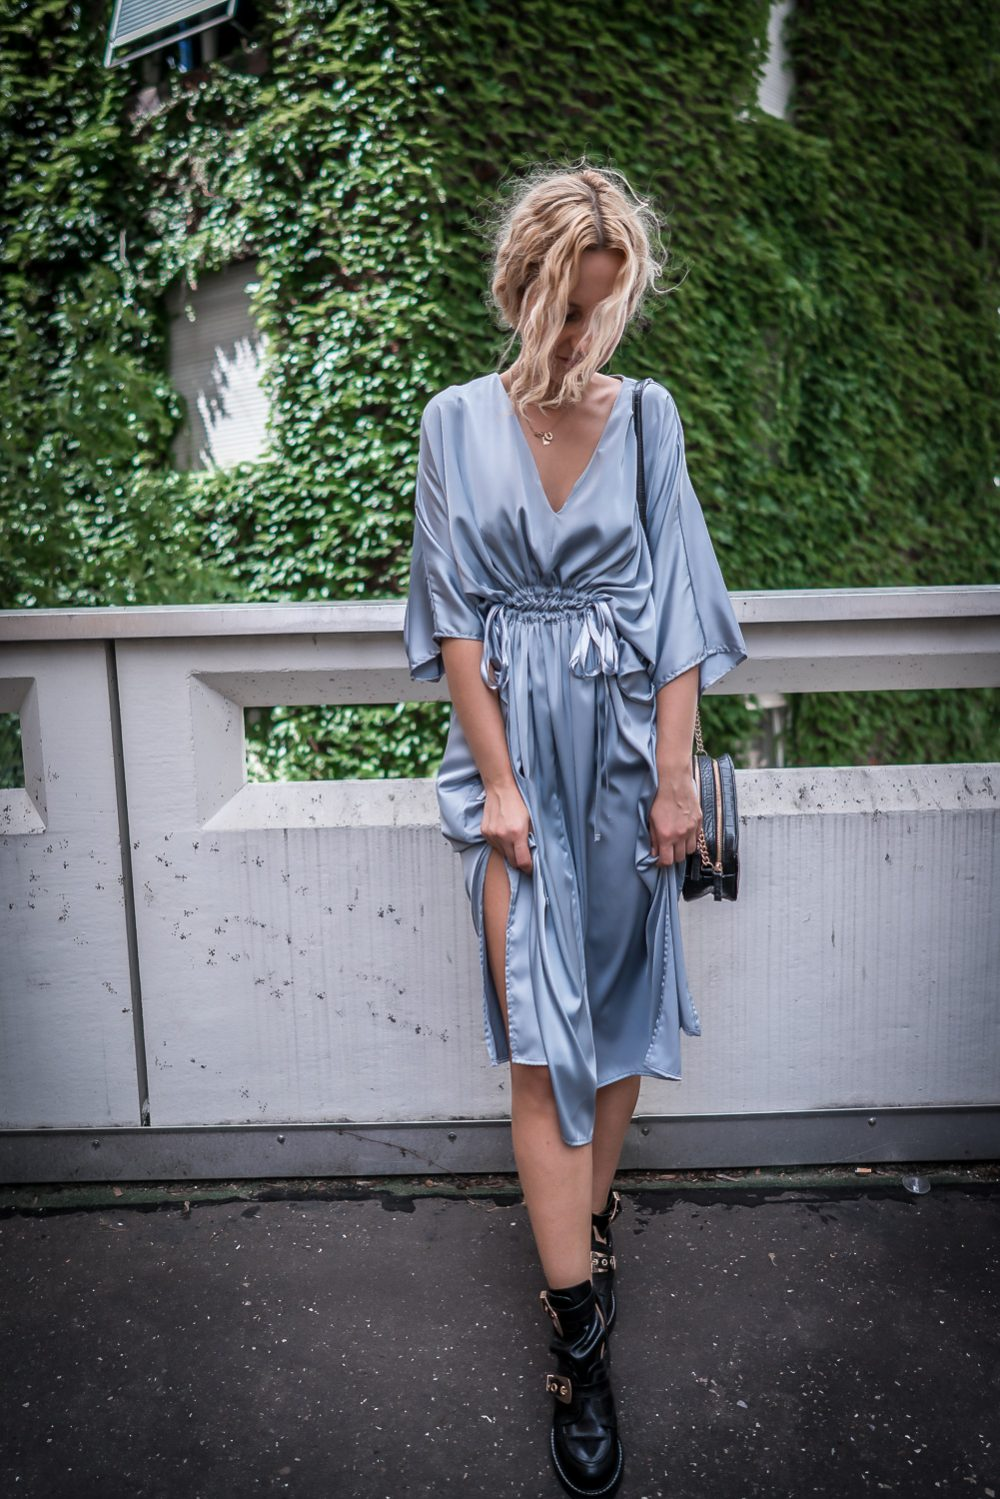 hm silver silk midi dress romantic girl street style look ootd outfit fashion bloger pinterest